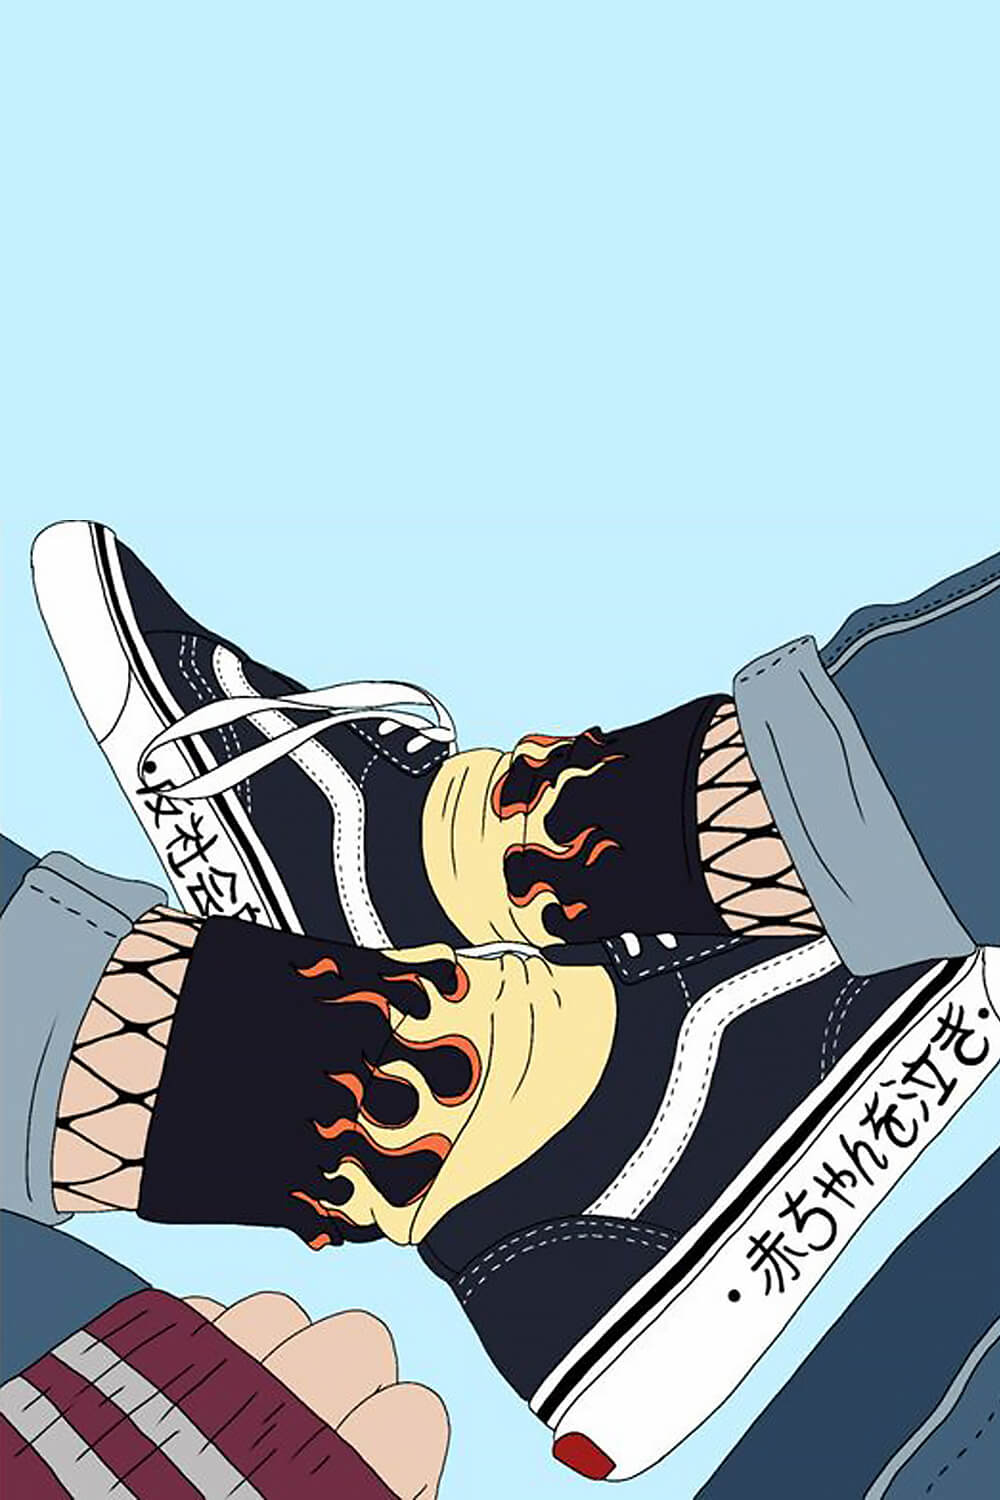 Fire Flame Socks Black and Yellow High Ankle 0 Pinterest - Orezoria Aesthetic Clothing Shop